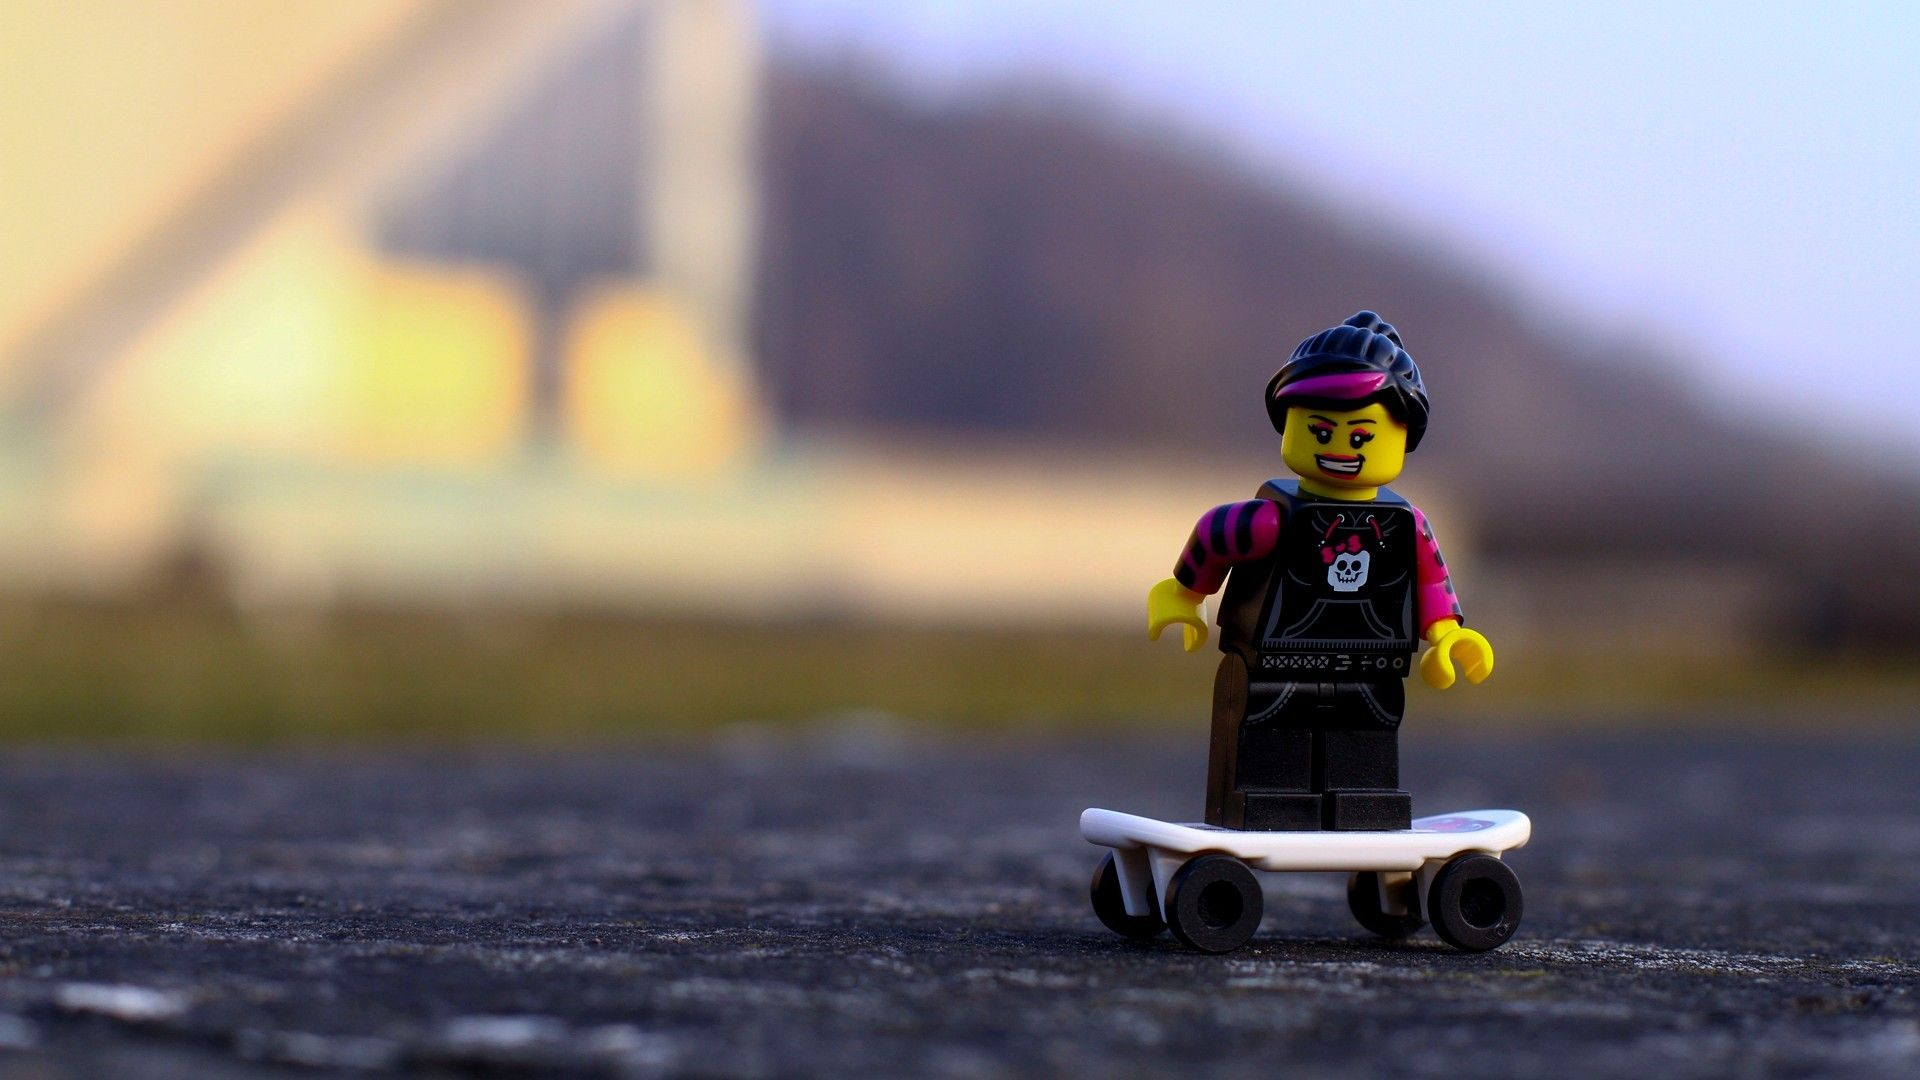 Skateboarding Girl Wallpaper Hd 25 Excellent Hd Lego Wallpapers